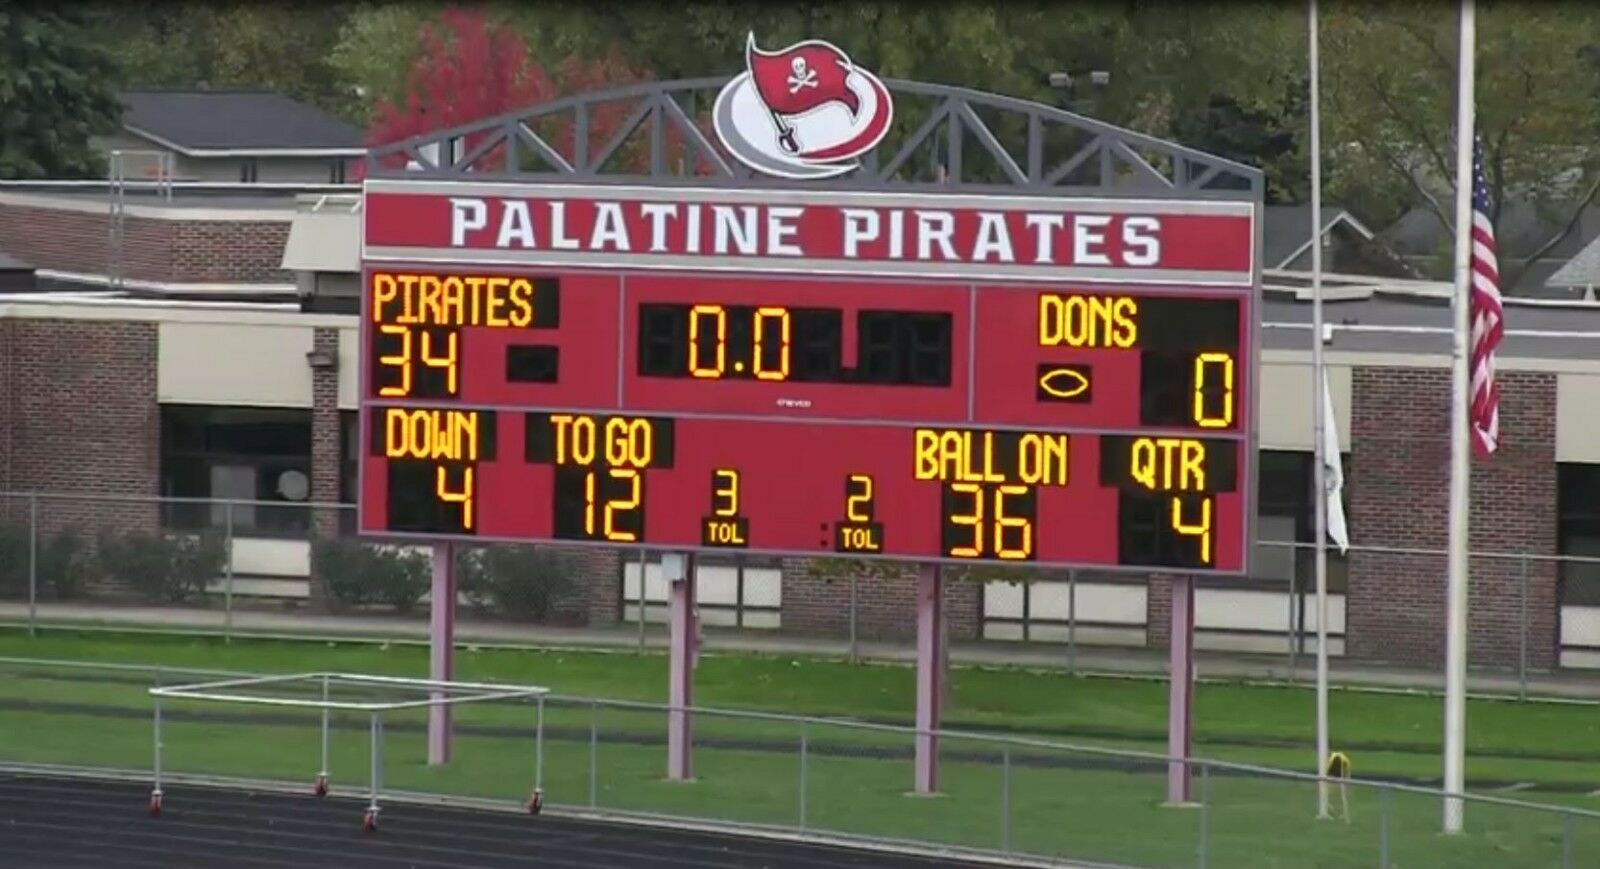 PALATINE PIRATES High school football game videos 2014 2015 2016 Email Delivery